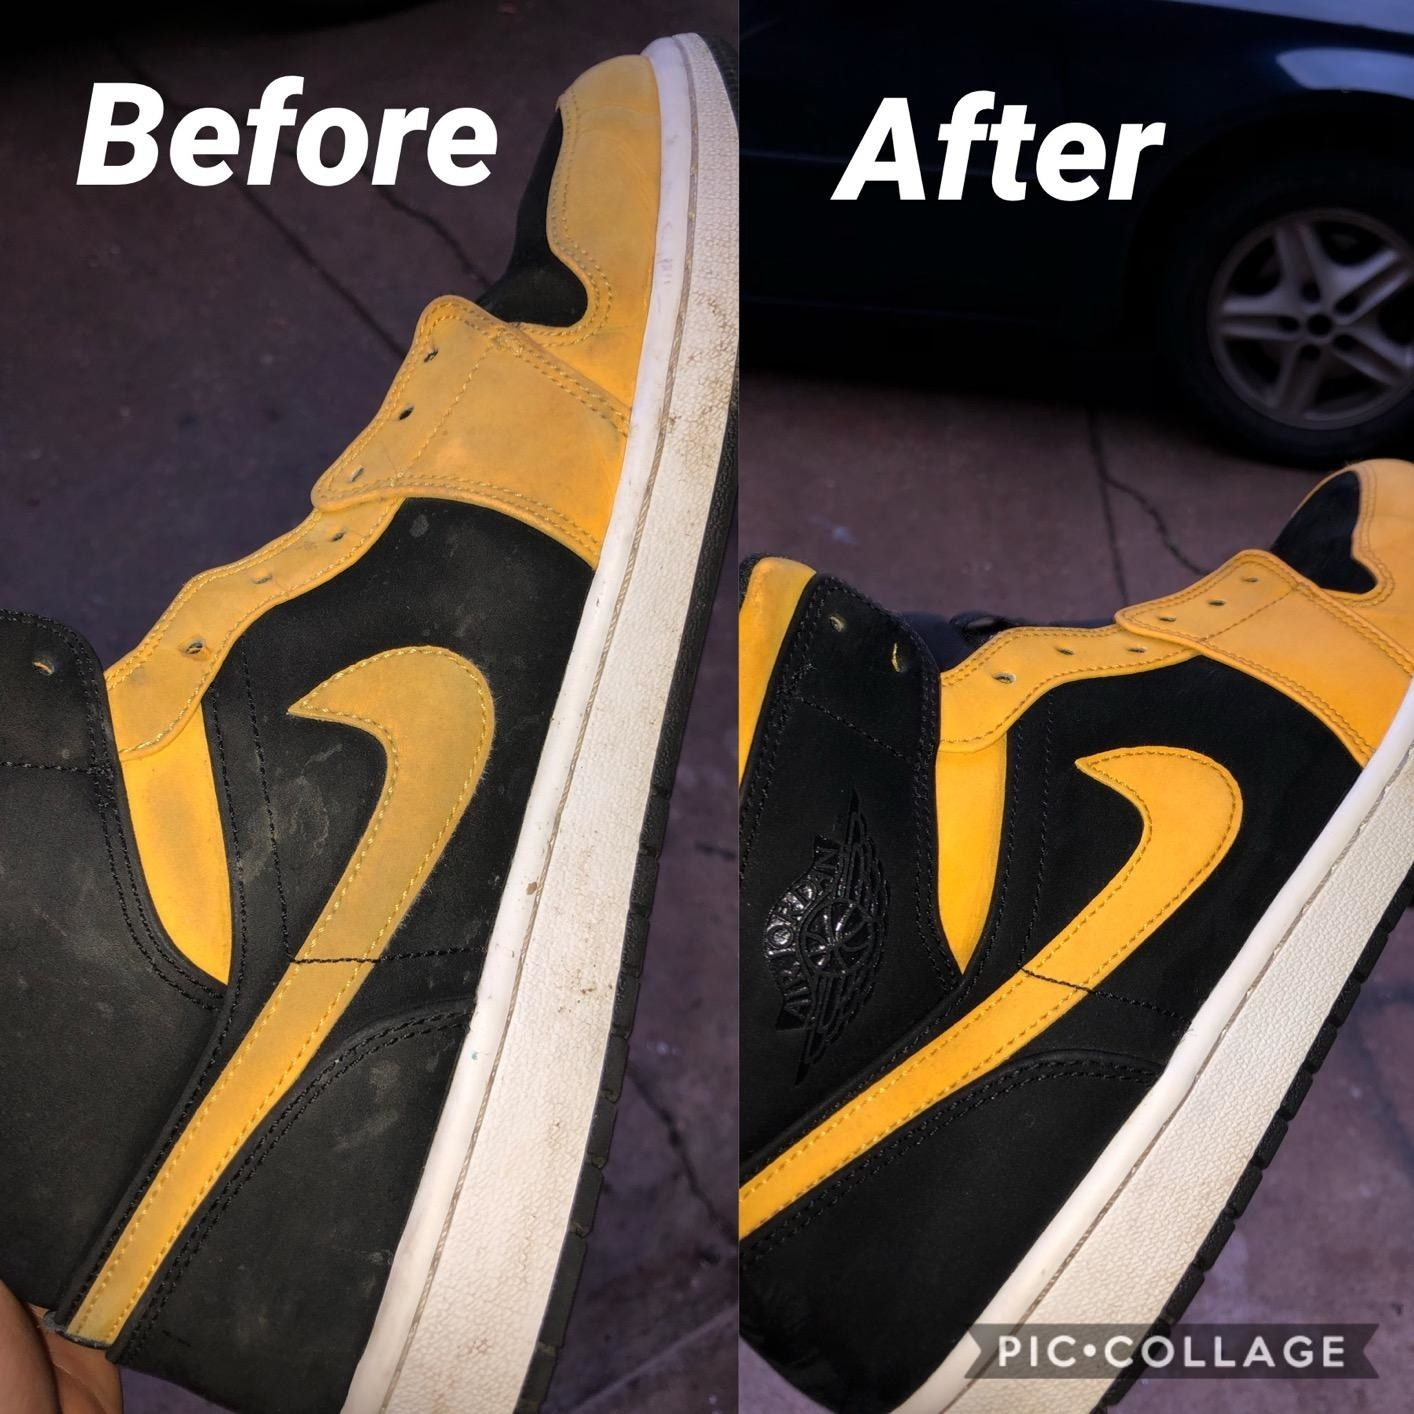 Reviewer's before and after photo of black and yellow Nike sneakers